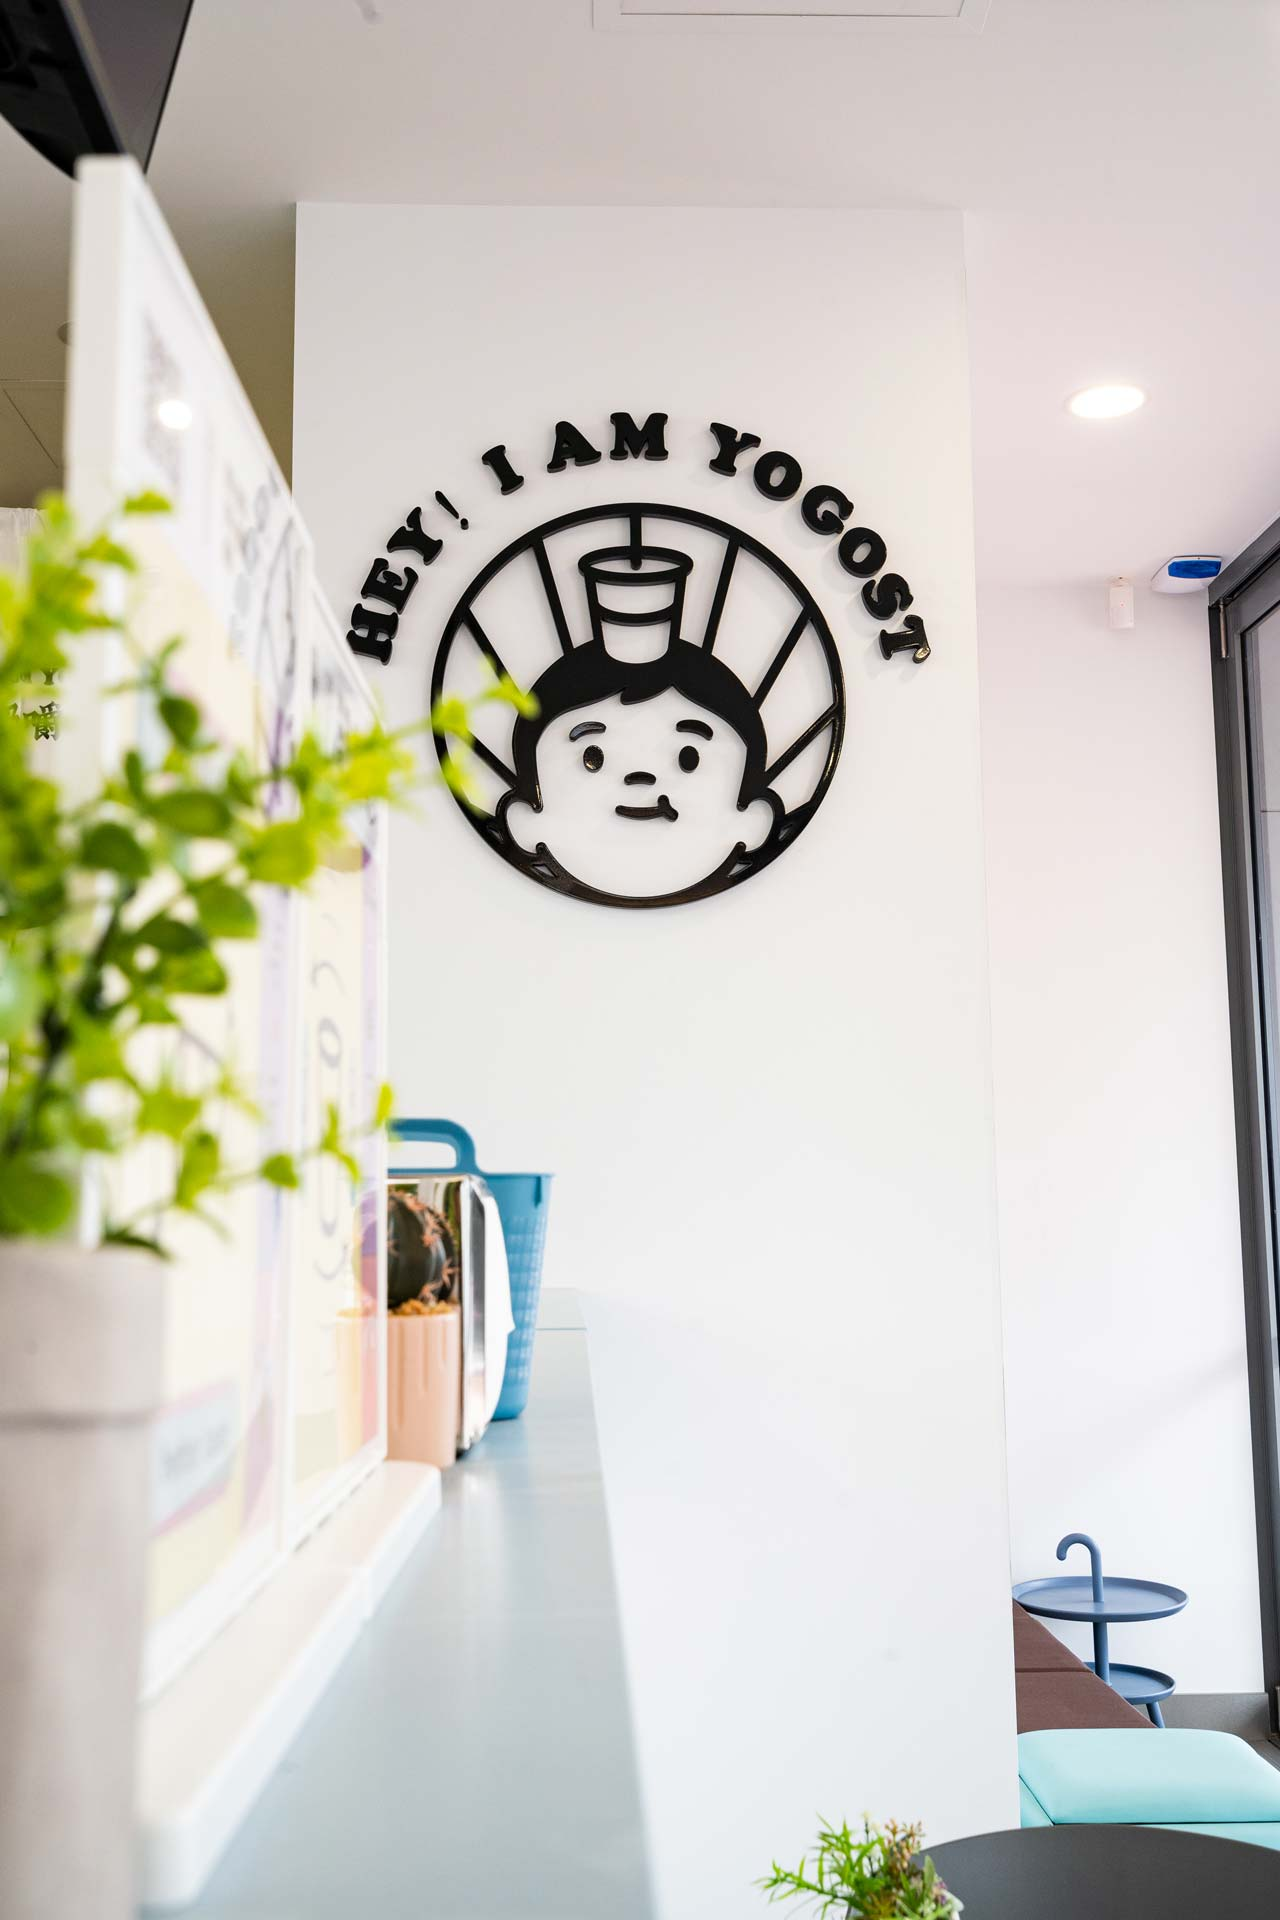 Yogost logo displayed on the cafe wall